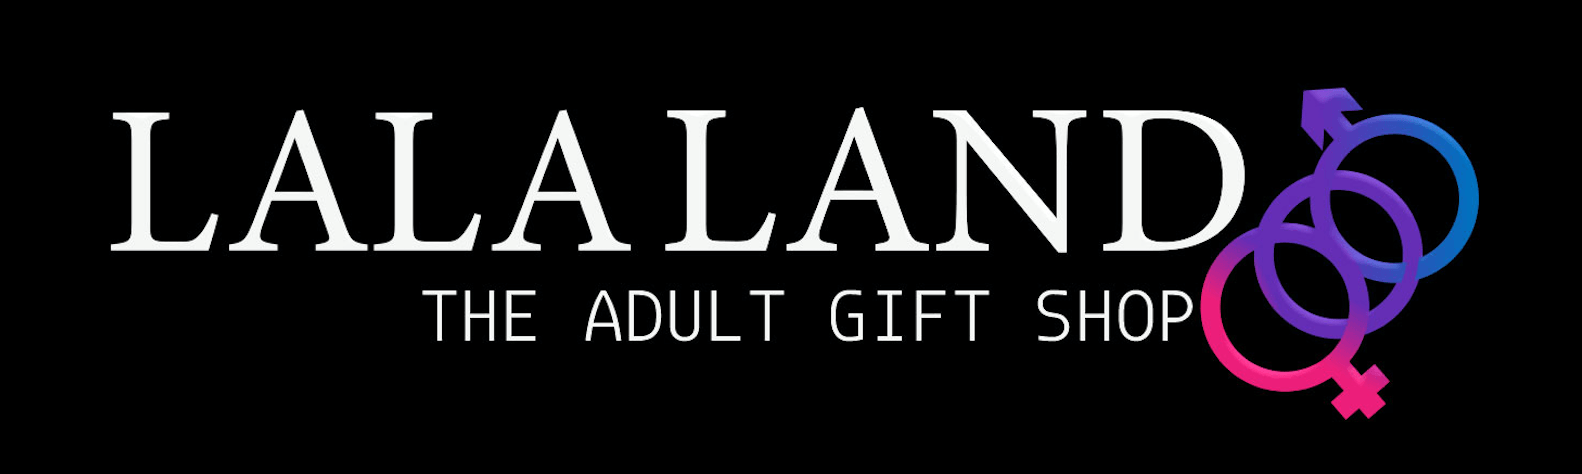 Lala land the adult gift shop, buy sex toys, 420